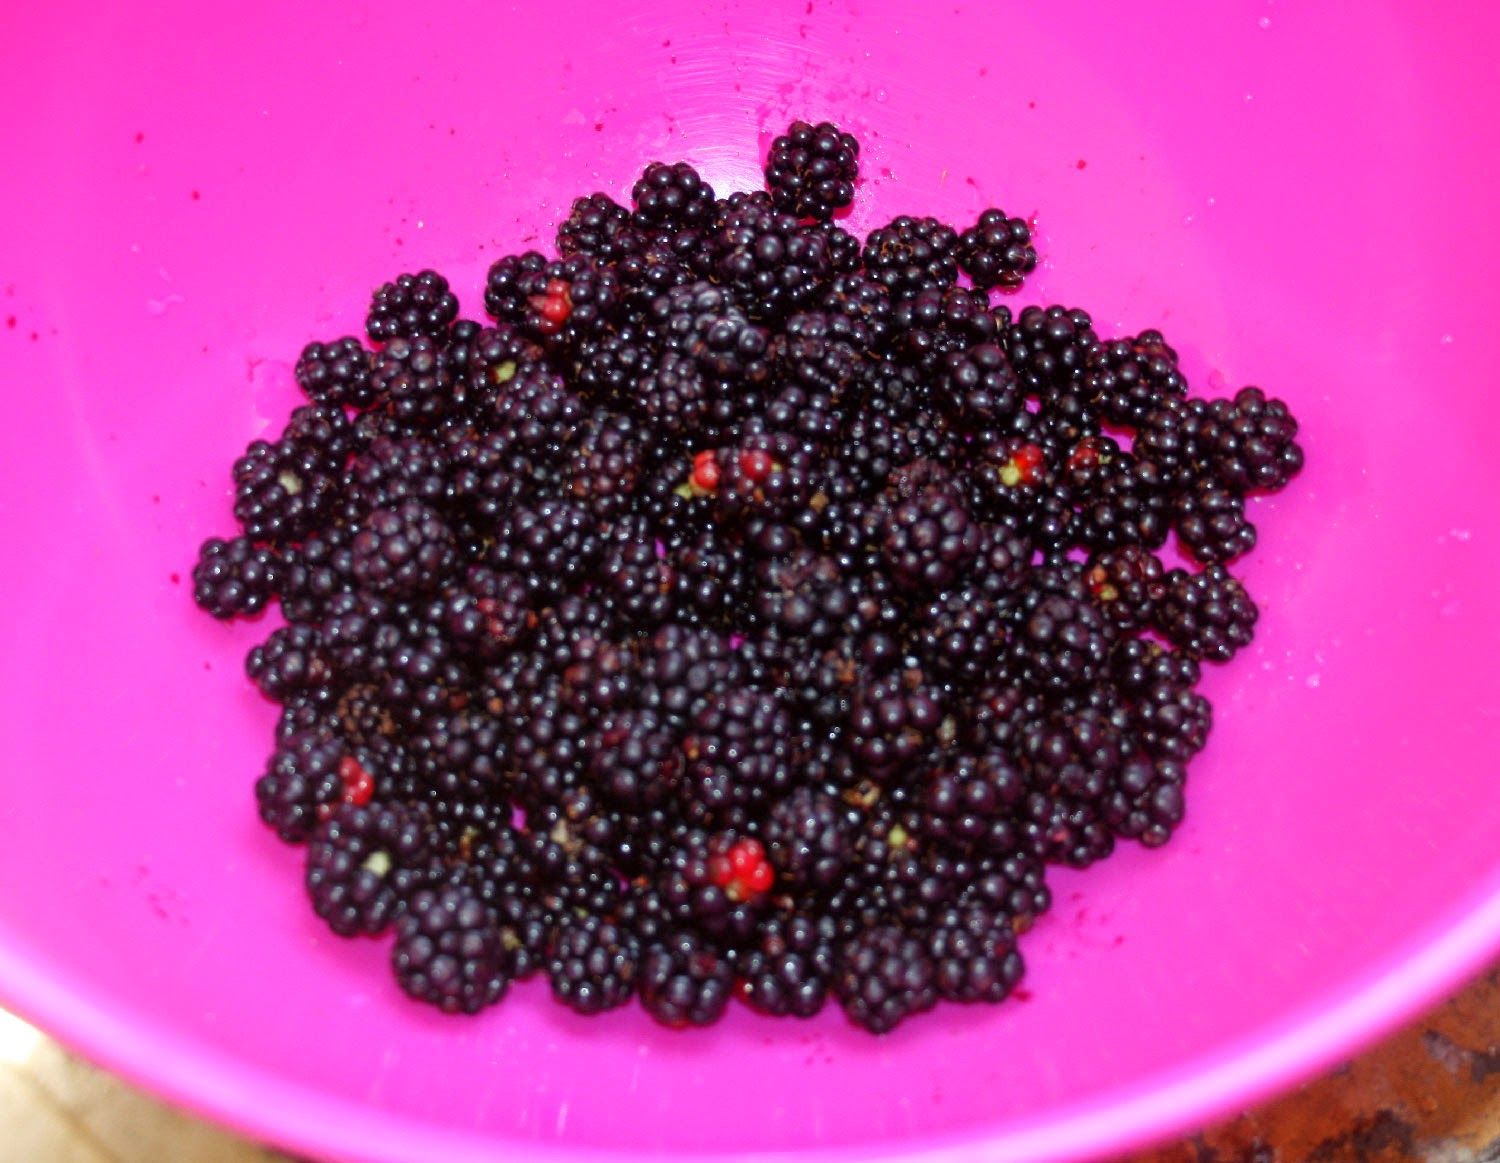 My blackberry harvest for today